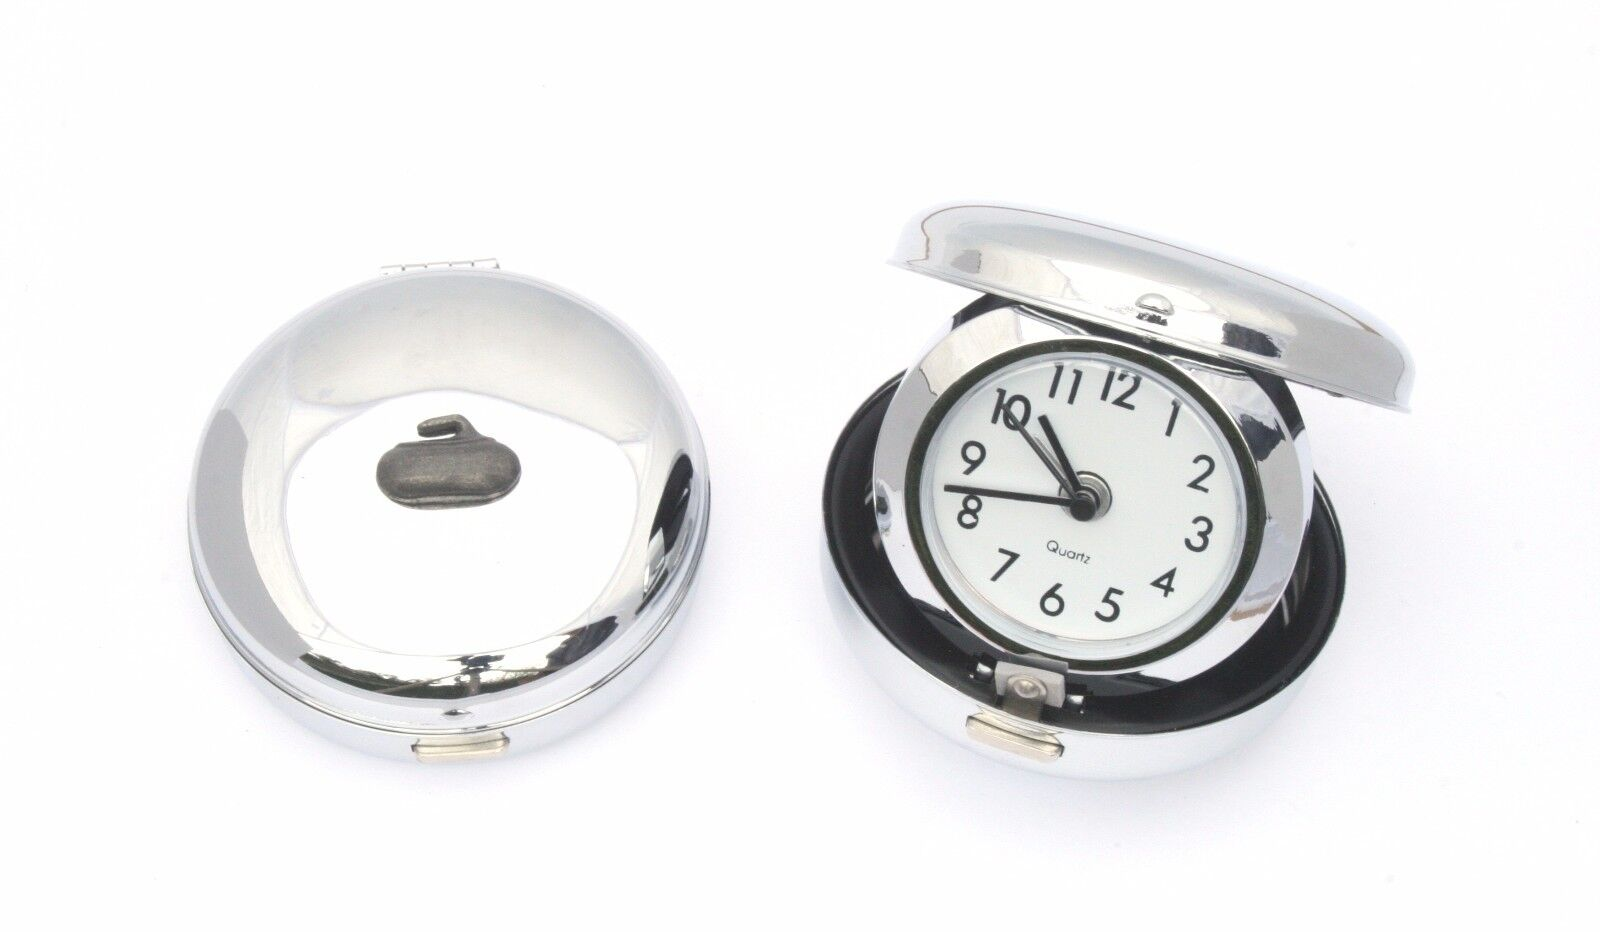 Curling Stone Style Travel Alarm Clock Quartz Ideal Curling Gift Gift Curling 01d10a